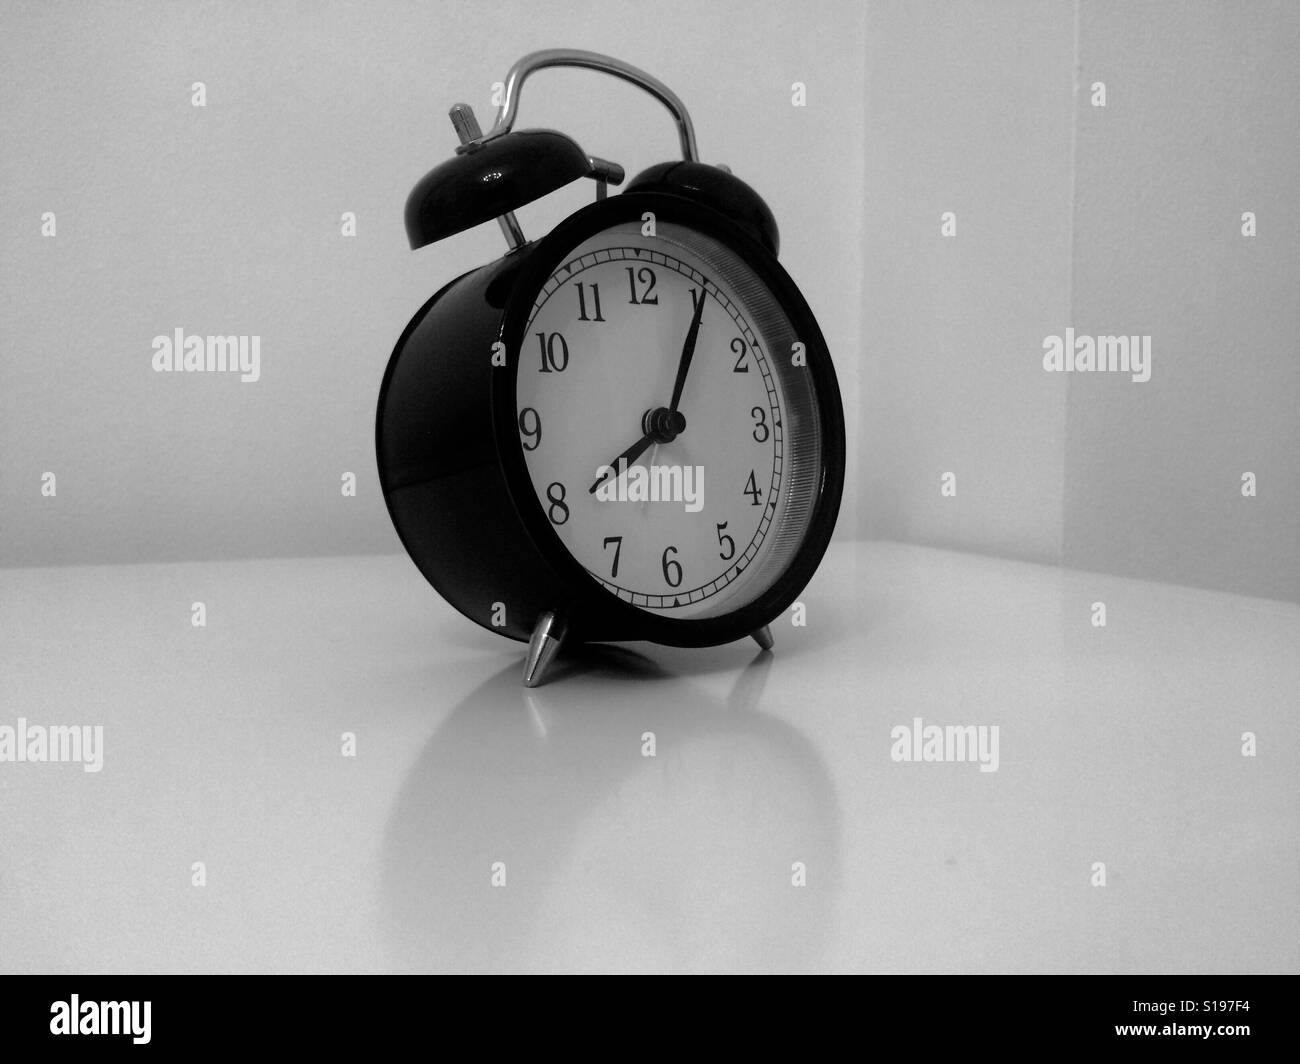 Tick tock goes the clock - Stock Image